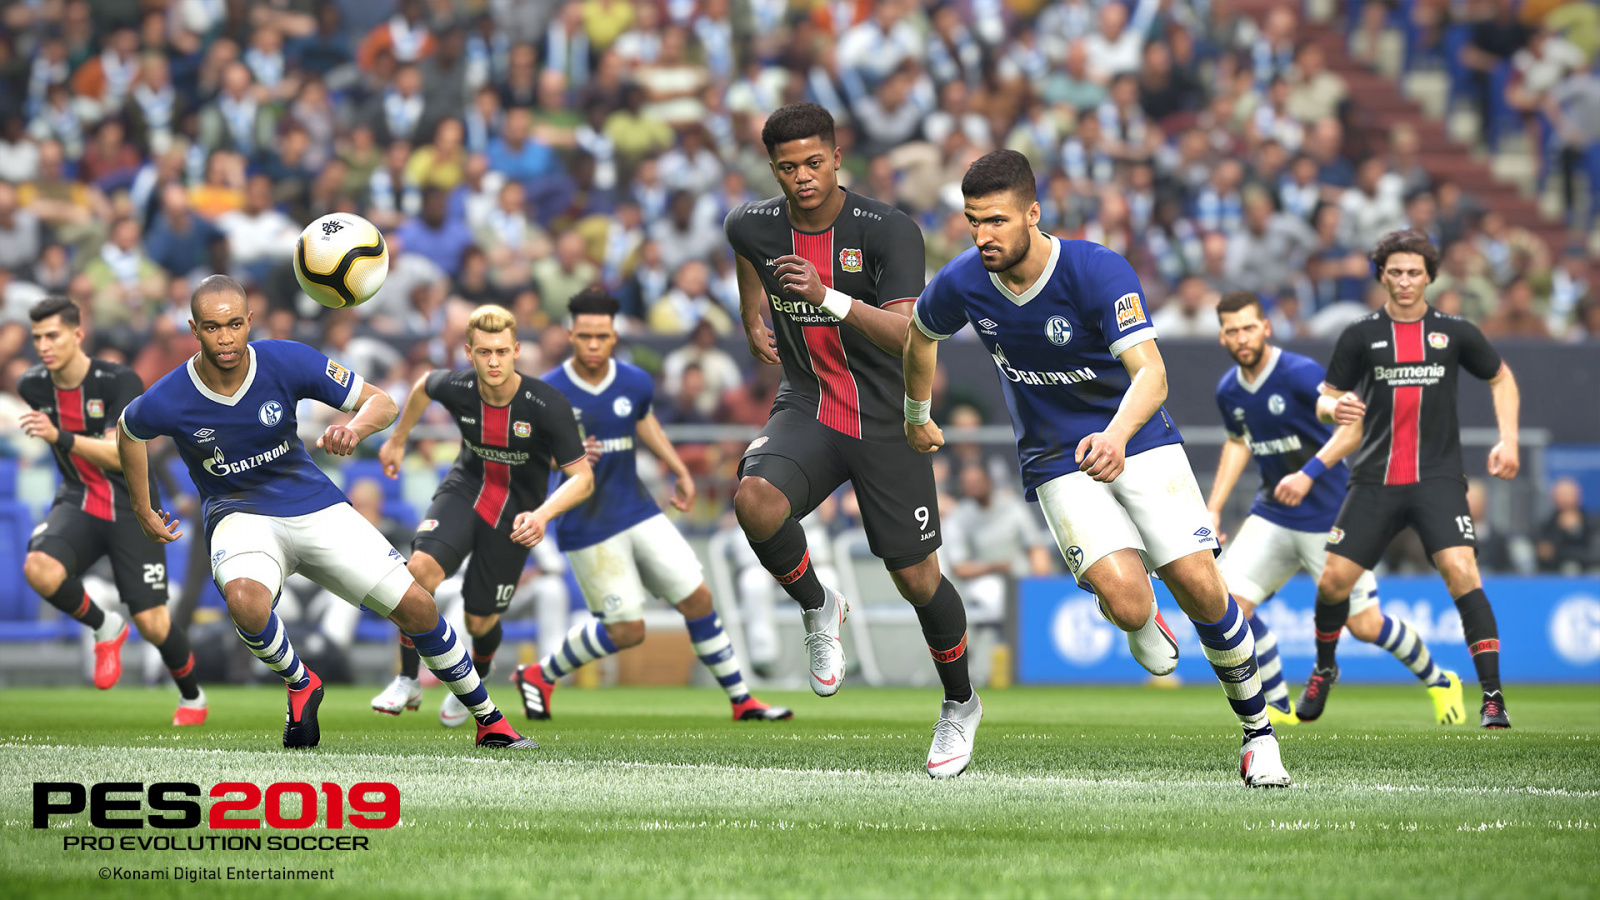 Pro Evolution Soccer 2019 (PES 2019) | ShopTo net